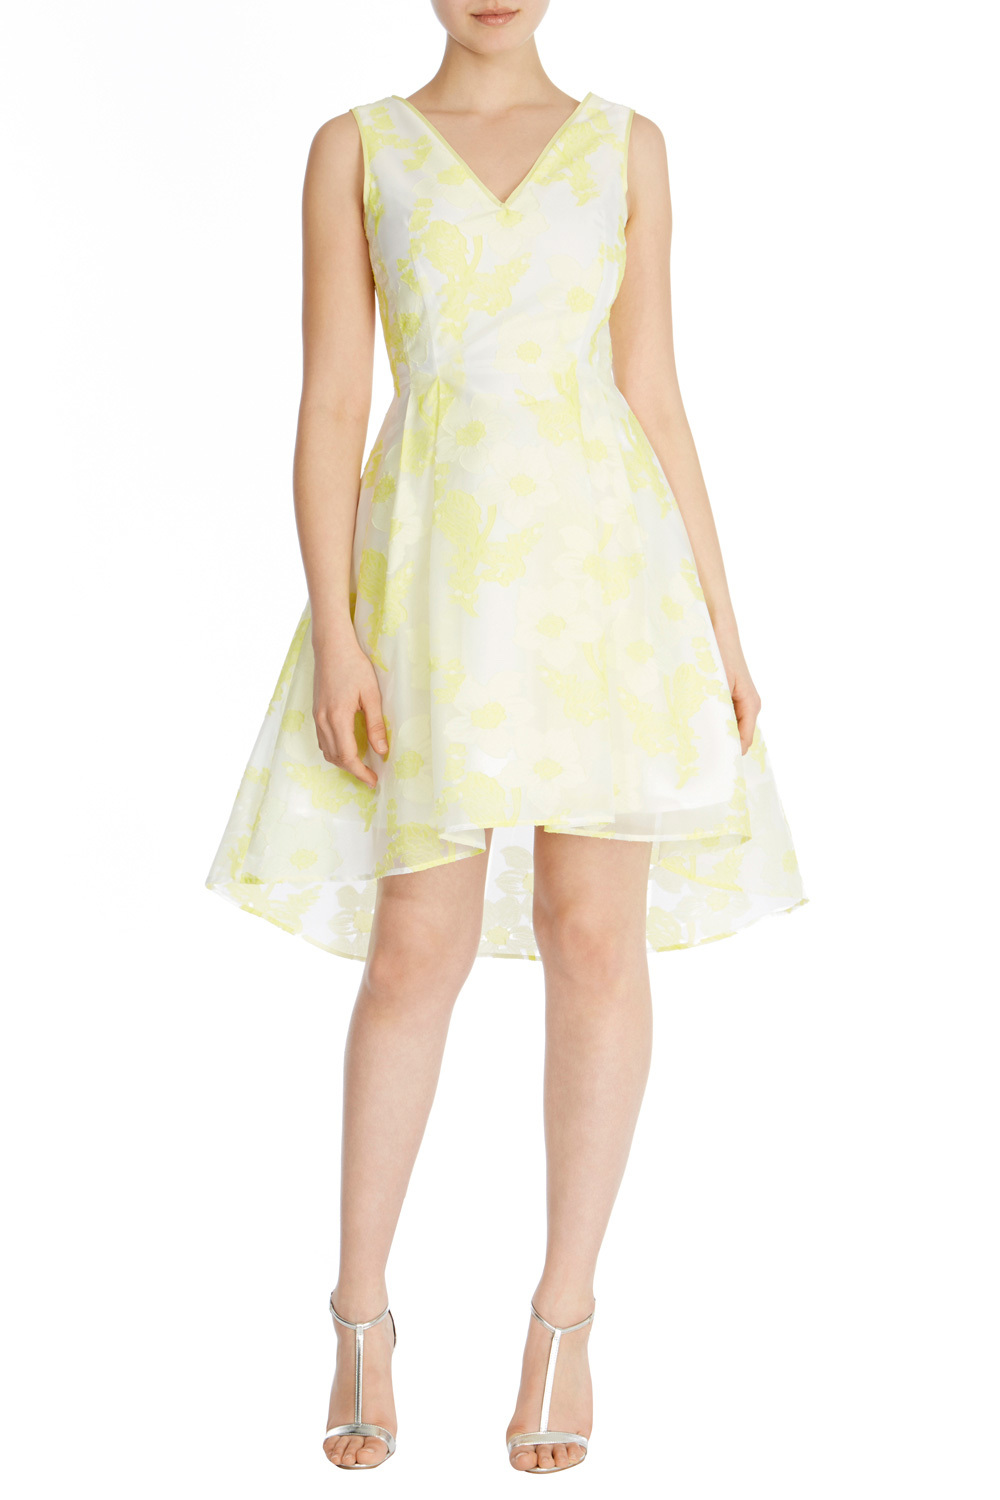 Pippa May Jacquard Dress - neckline: v-neck; sleeve style: sleeveless; style: prom dress; predominant colour: primrose yellow; secondary colour: primrose yellow; occasions: evening; length: just above the knee; fit: fitted at waist & bust; fibres: polyester/polyamide - mix; sleeve length: sleeveless; pattern type: fabric; pattern: florals; texture group: brocade/jacquard; season: s/s 2016; wardrobe: event